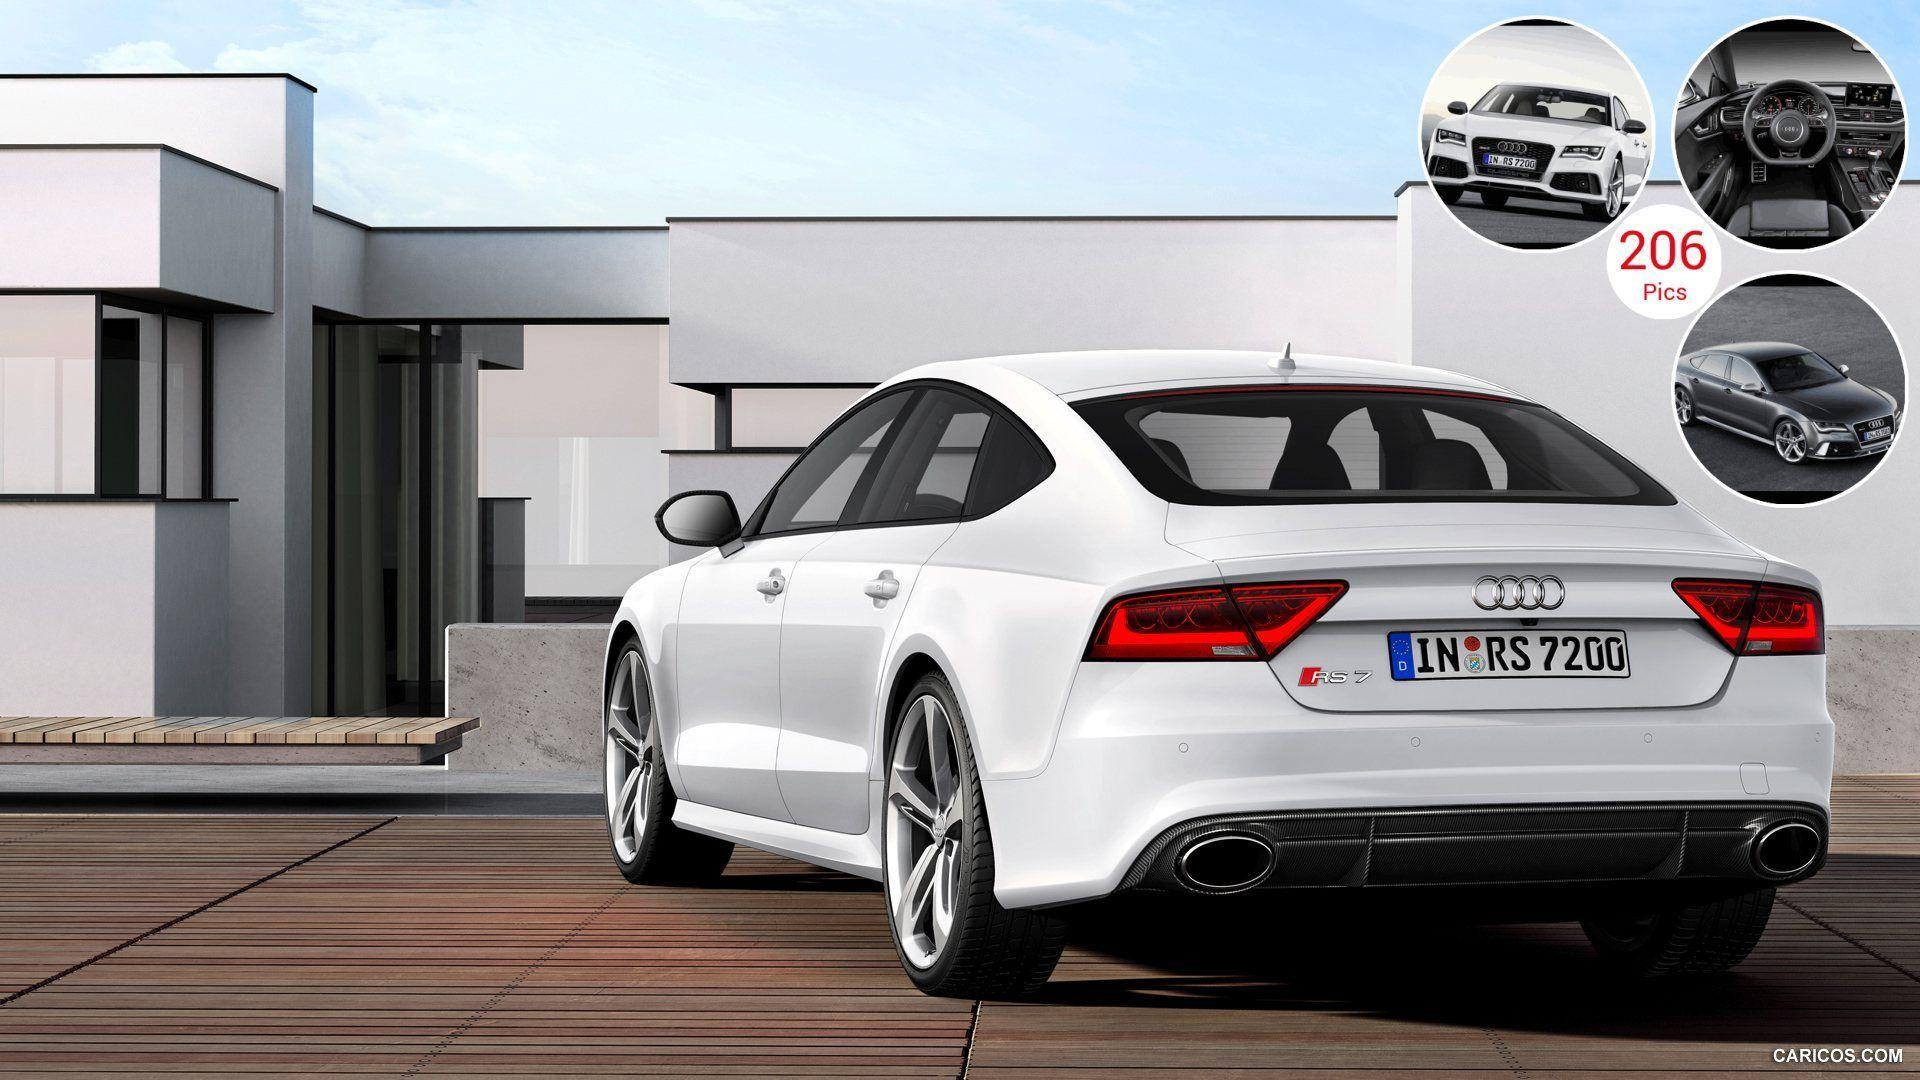 Audi Rs7 0-60 >> Audi RS7 Wallpapers - Wallpaper Cave